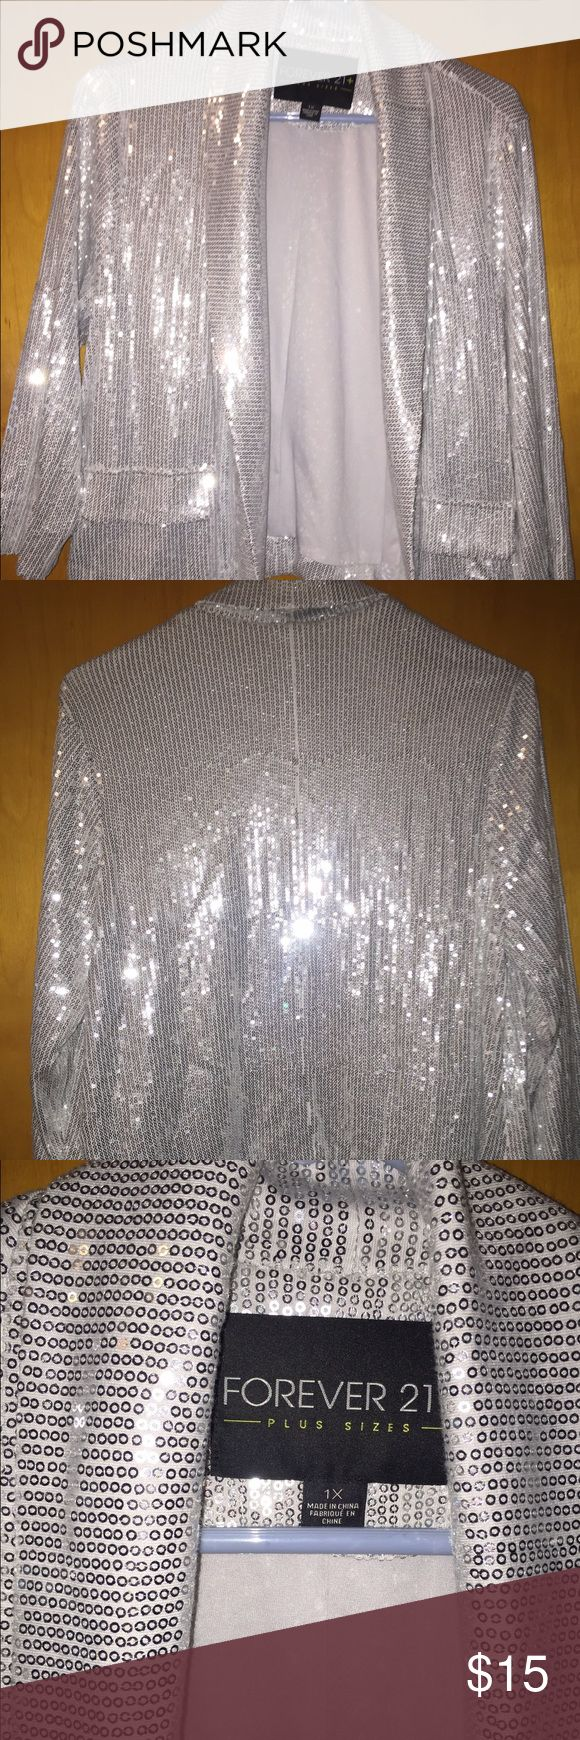 Forever 21 silver blazer Shiny and chic.. Silver shimmery blazer from forever 21 size 1x. Faux pockets. Great used condition. Pair with black jeggins, white tank top and sexy black heels and you're ready to go.. Forever 21 Jackets & Coats Blazers